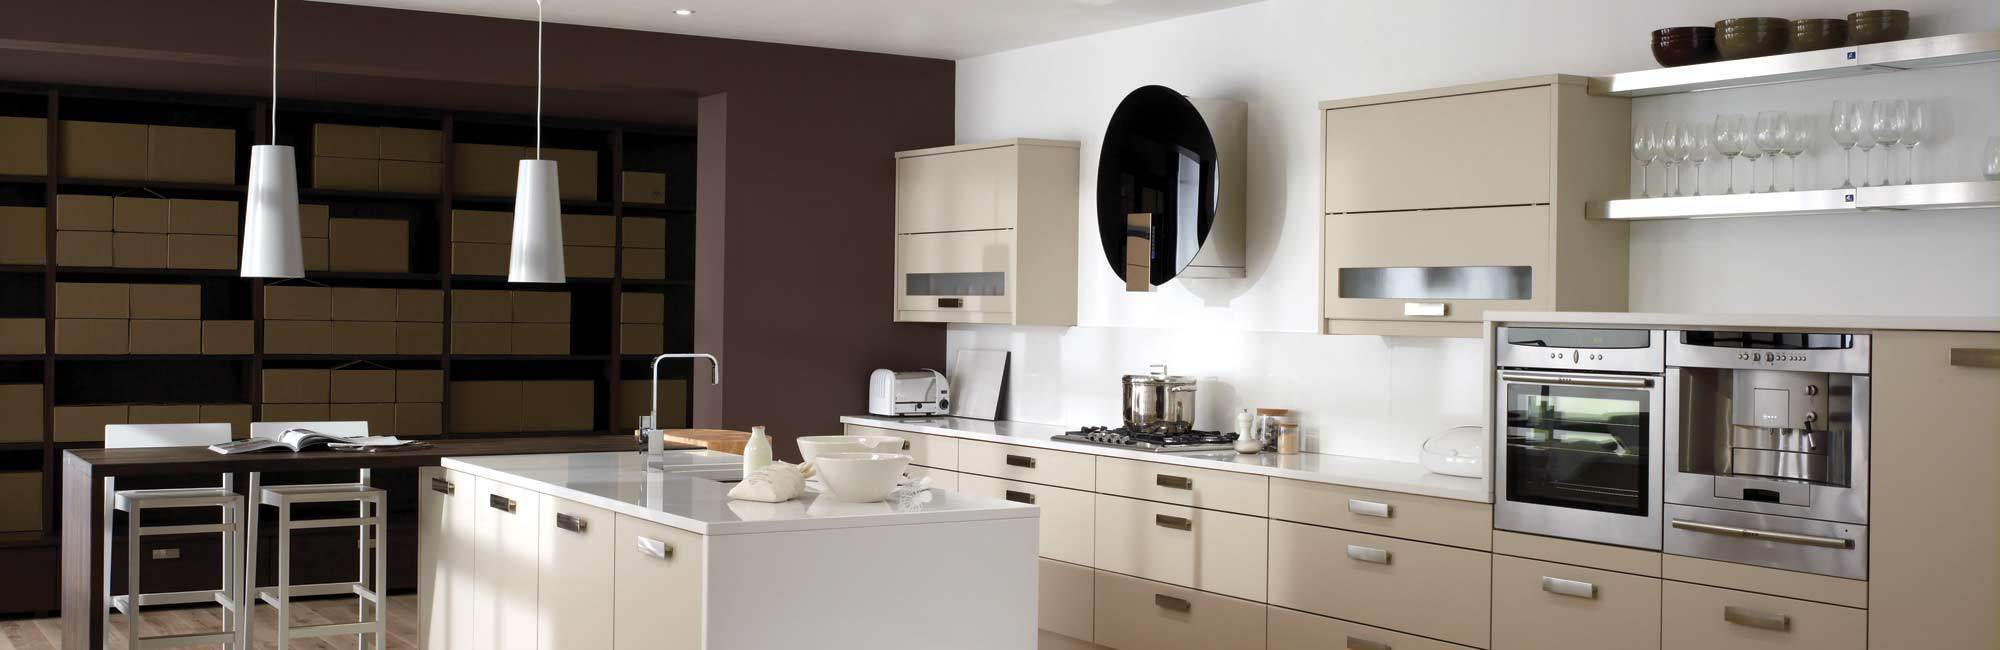 One of the contemporary dream kitchens in Lee-on-the-Solent